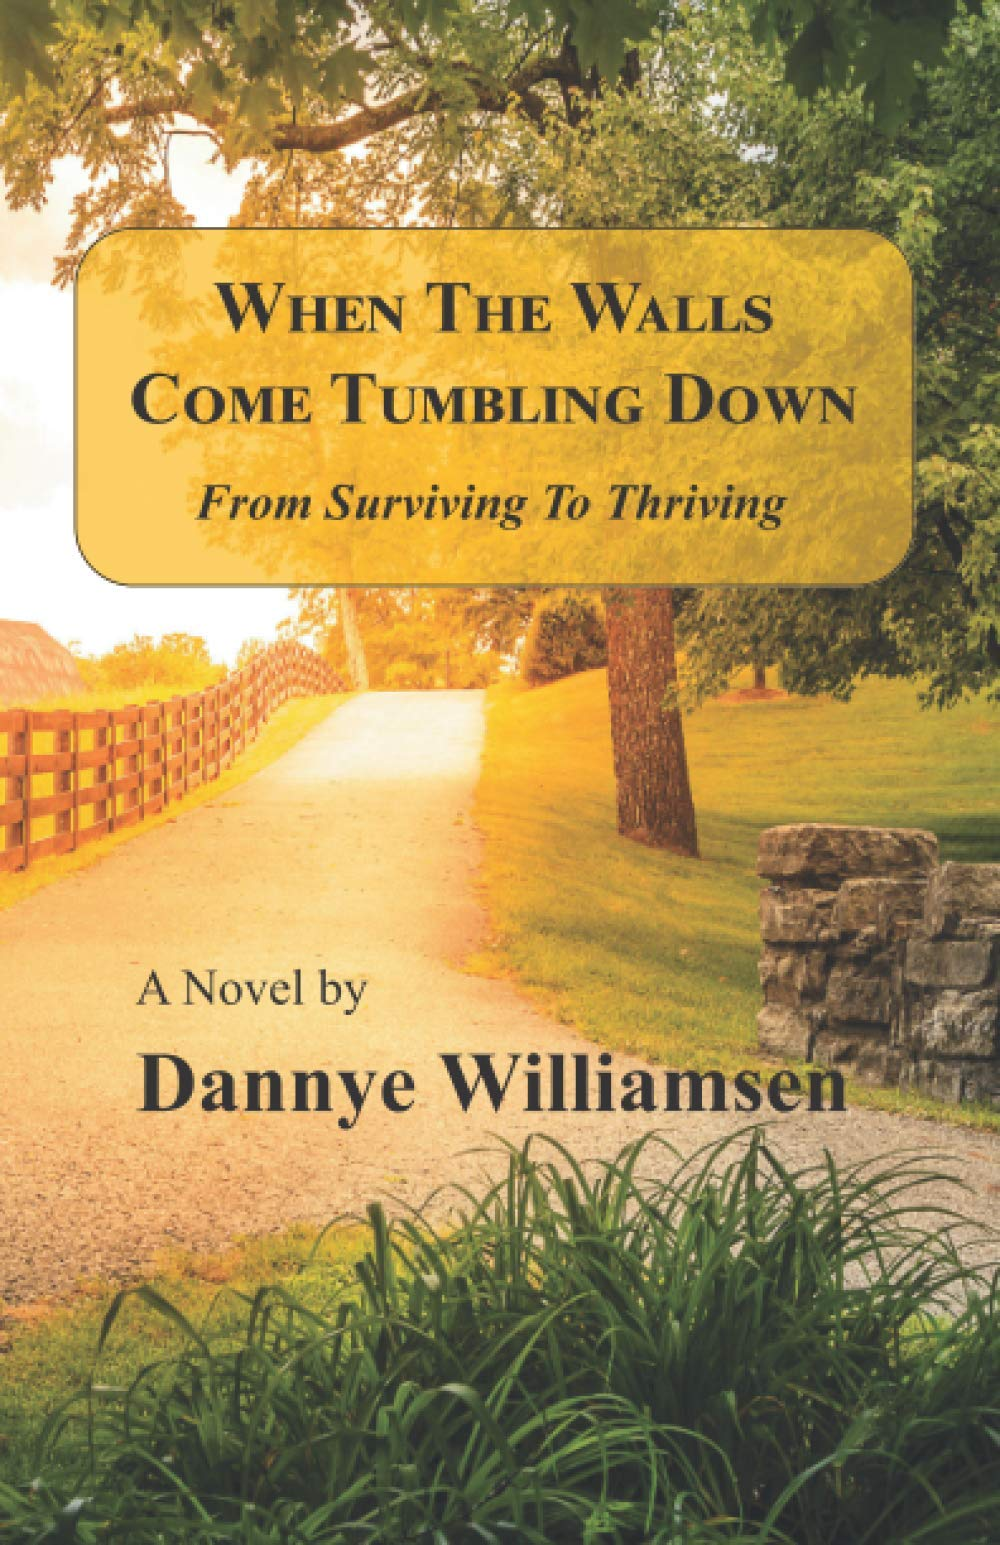 When The Walls Come Tumbling Down: From Surviving To Thriving